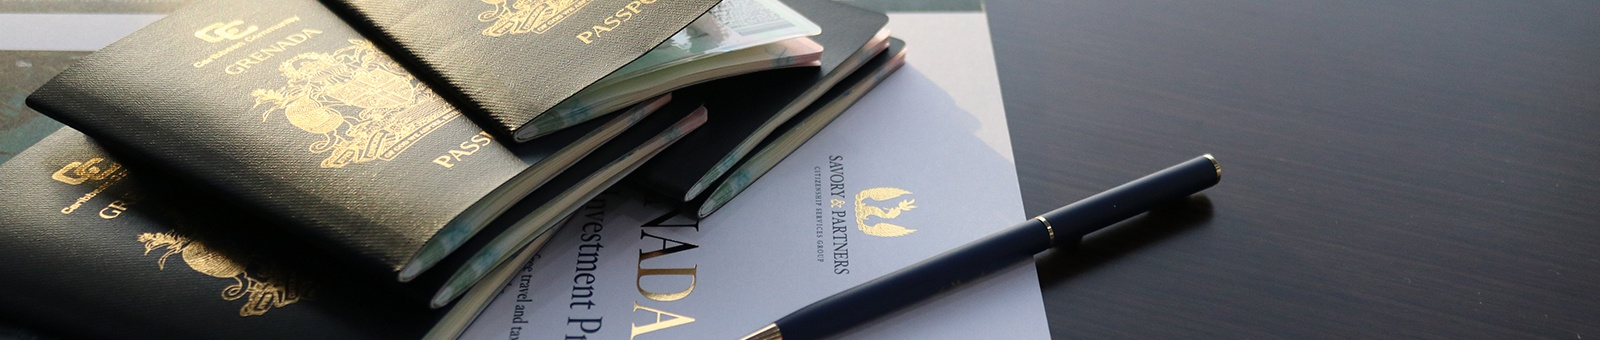 The Immigration and Passport Department from the Government of Grenada has officially launched the e-Passport on Tuesday 17th July 2018. Being the...